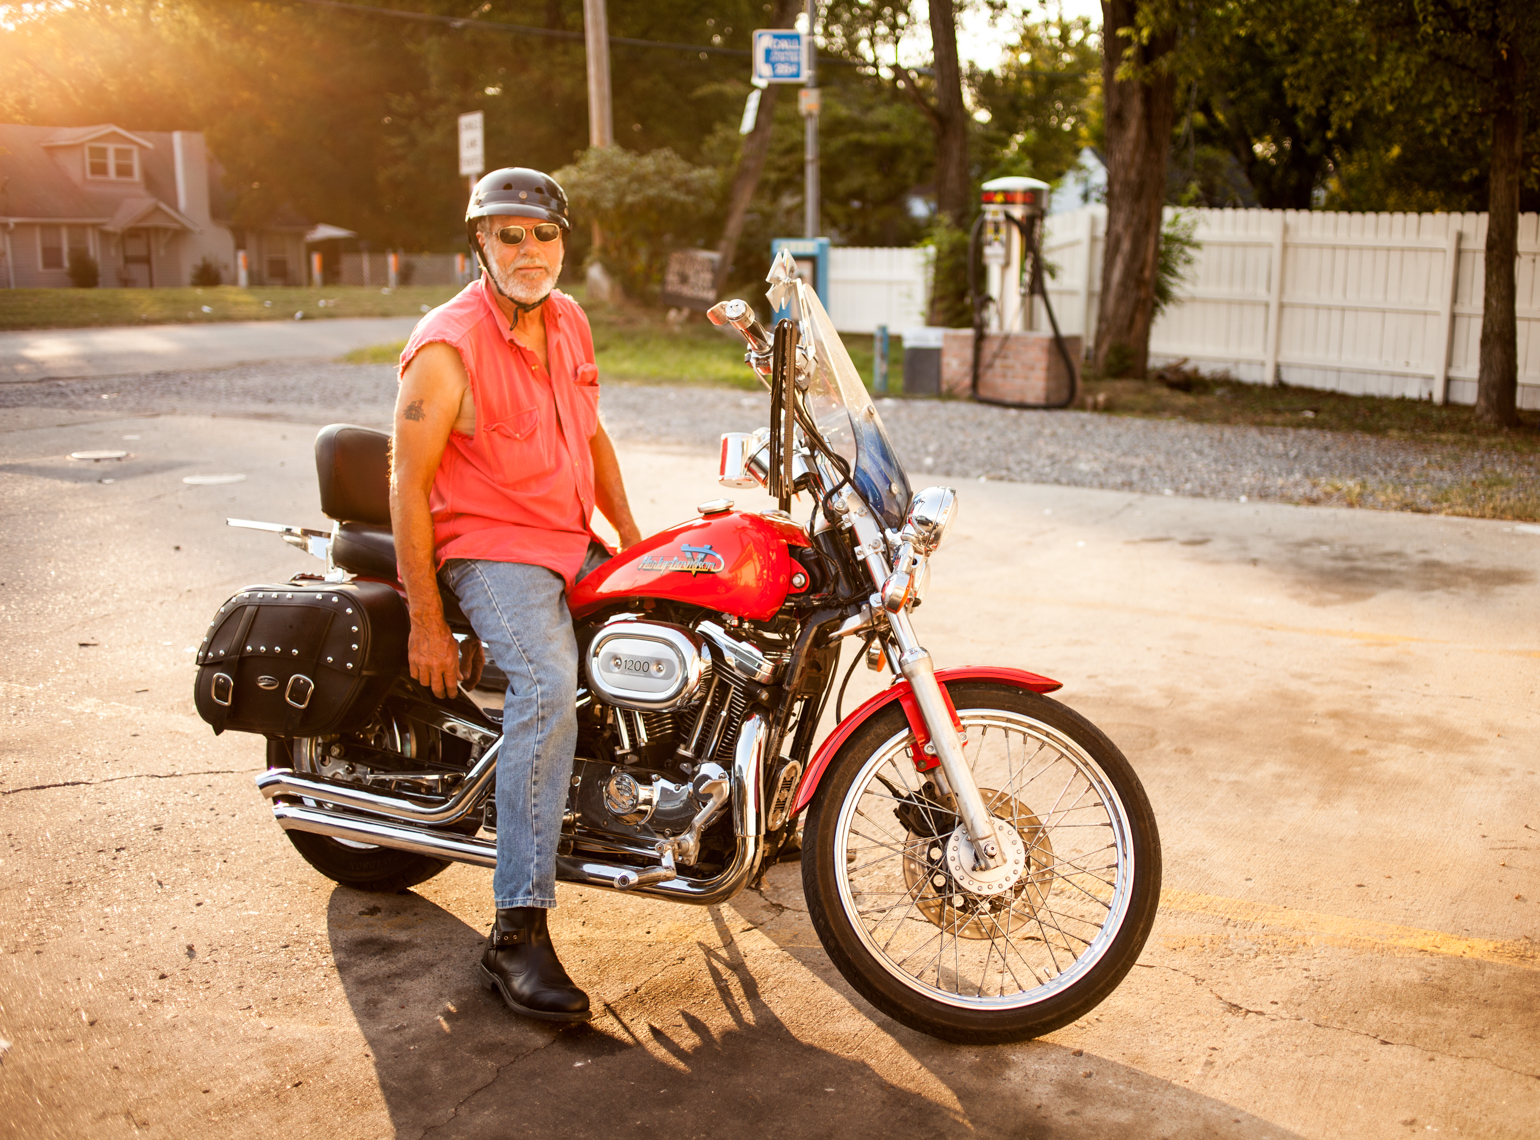 Portrait of a man on a Harley Davidson motorcycle, east Nashville, Tennessee